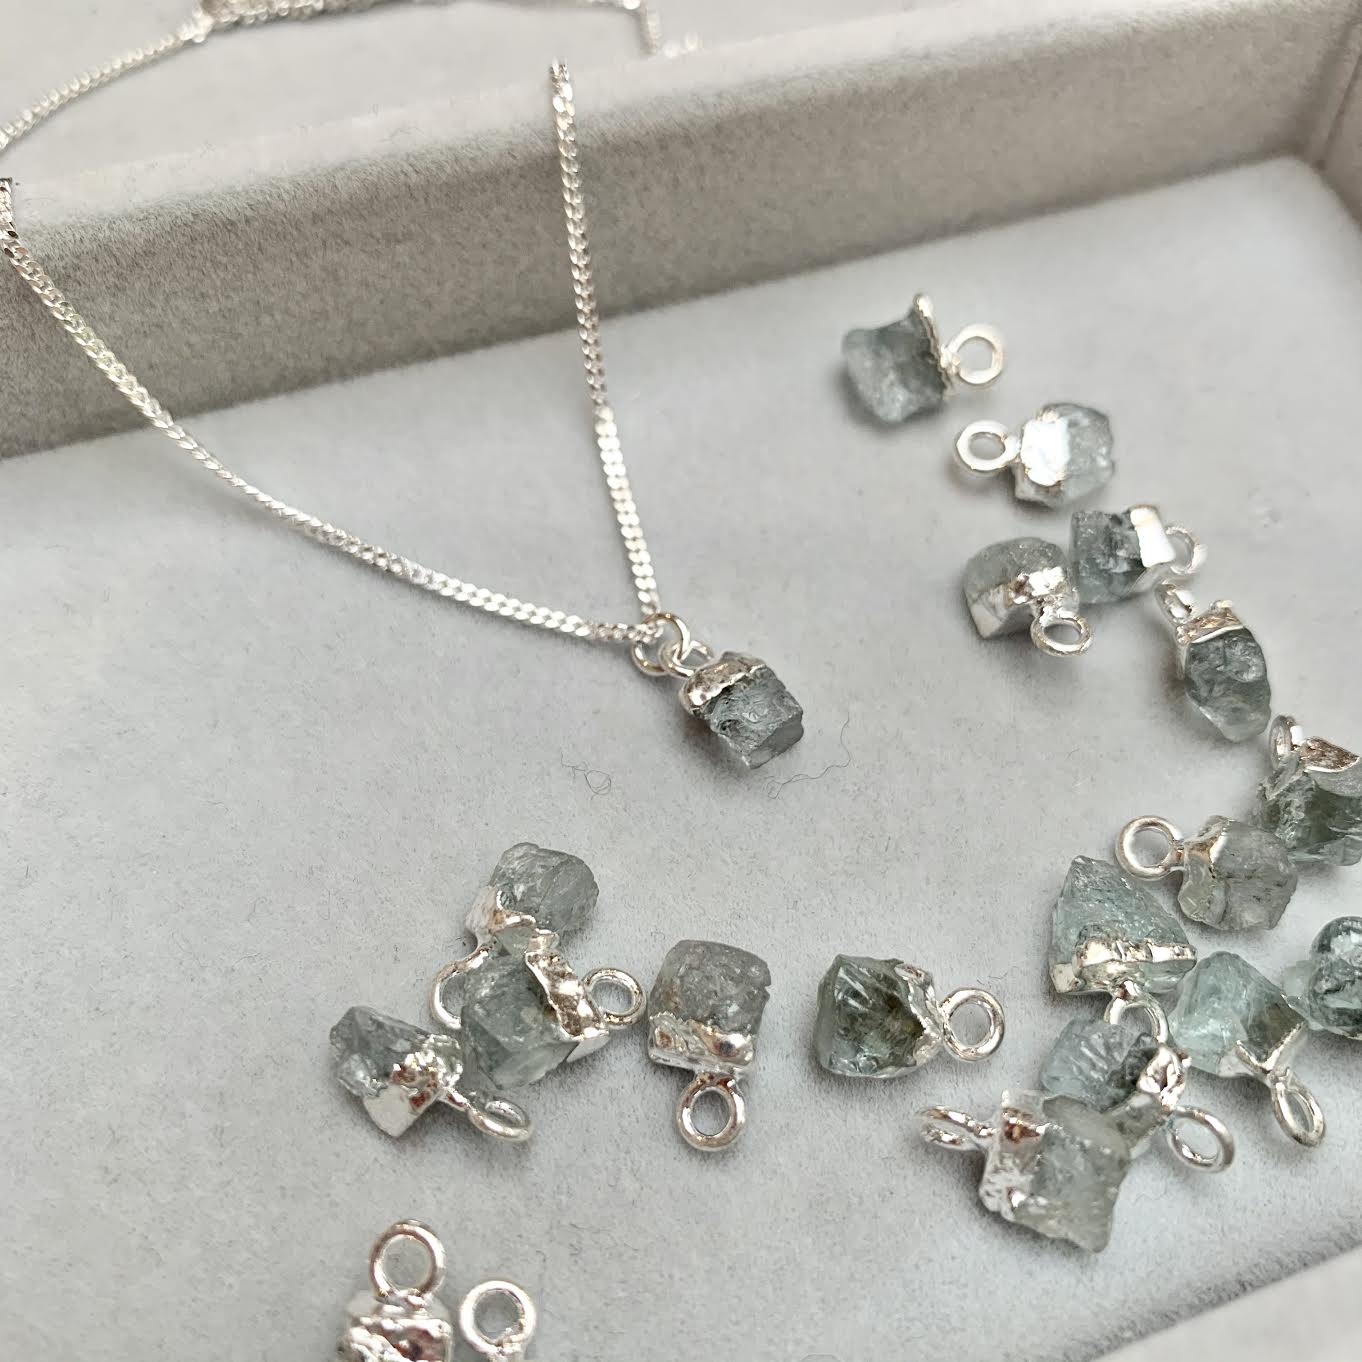 Birthstone Necklace - Sterling Silver - MARCH, Aquamarine - Decadorn